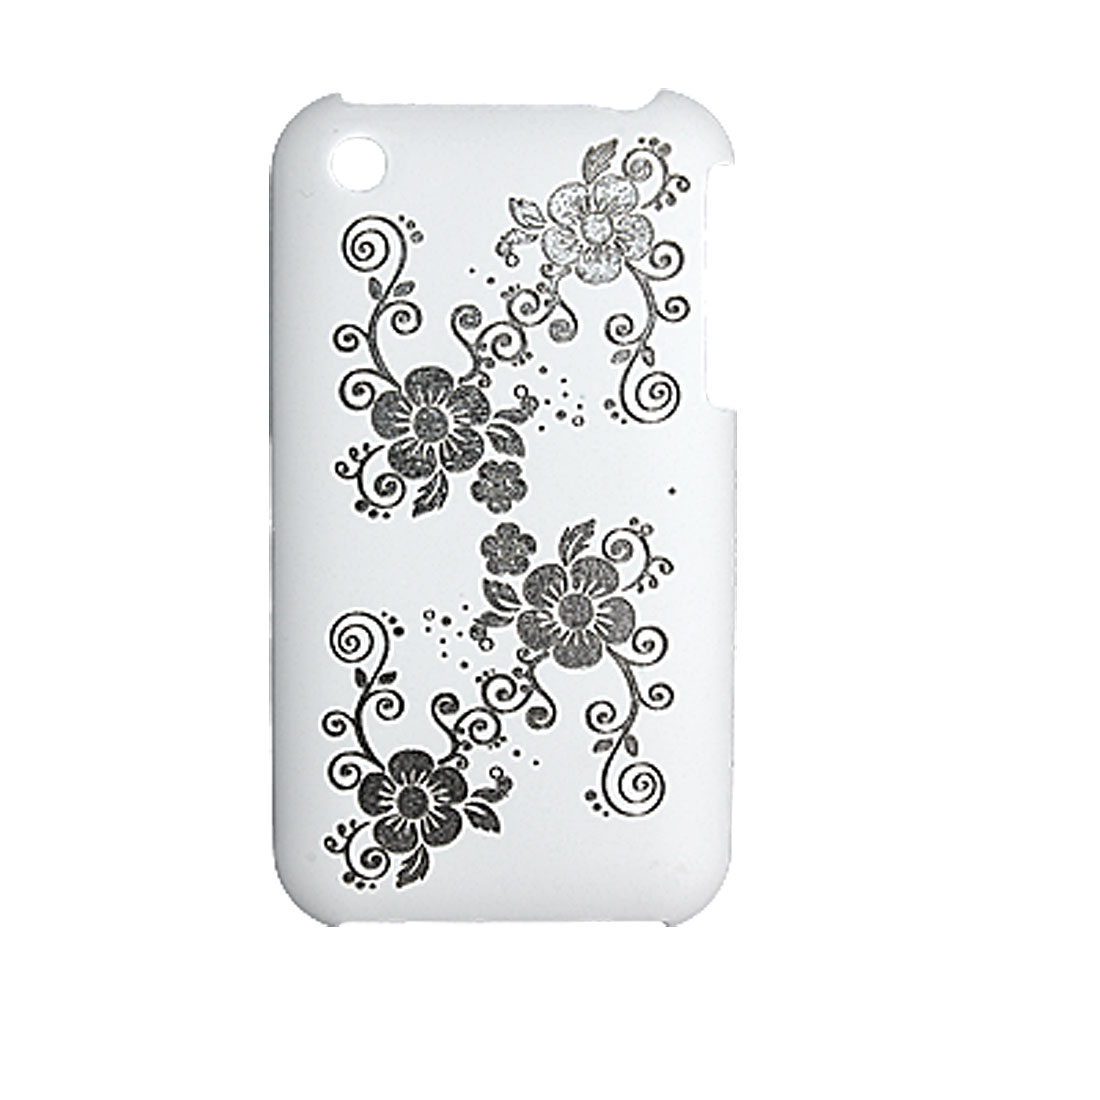 Flower White Plastic Case Screen Protector for Apple iPhone 3G